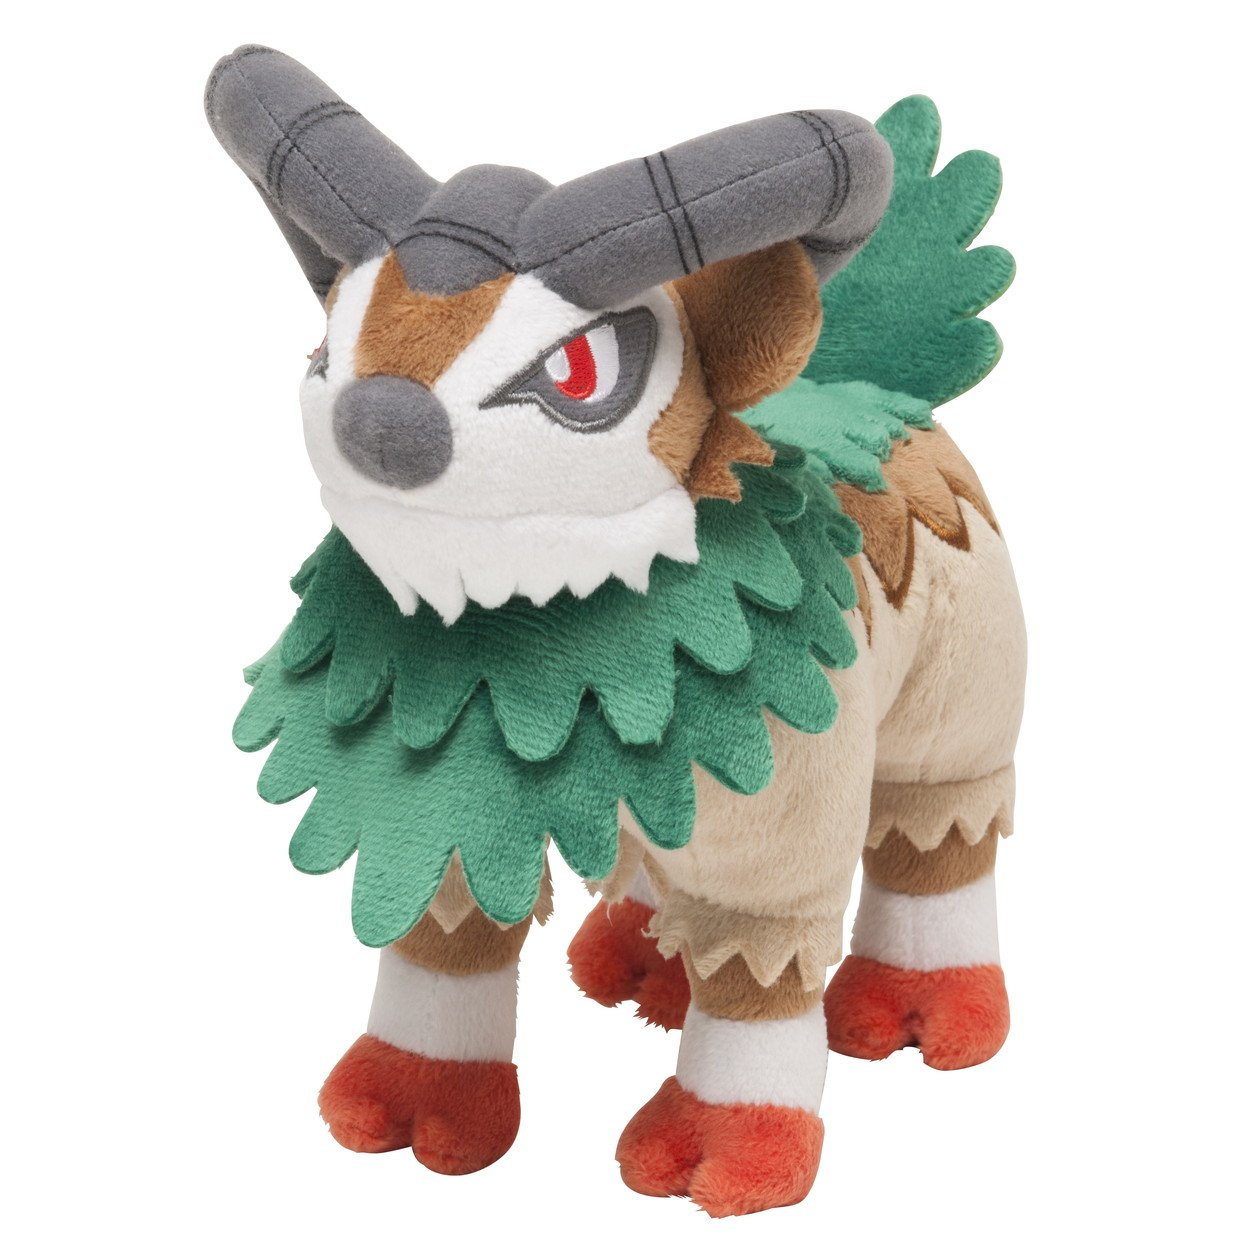 Amazon.com: Pok?mon Center Original Products Stuffed toy Gogoat: Toys & Games